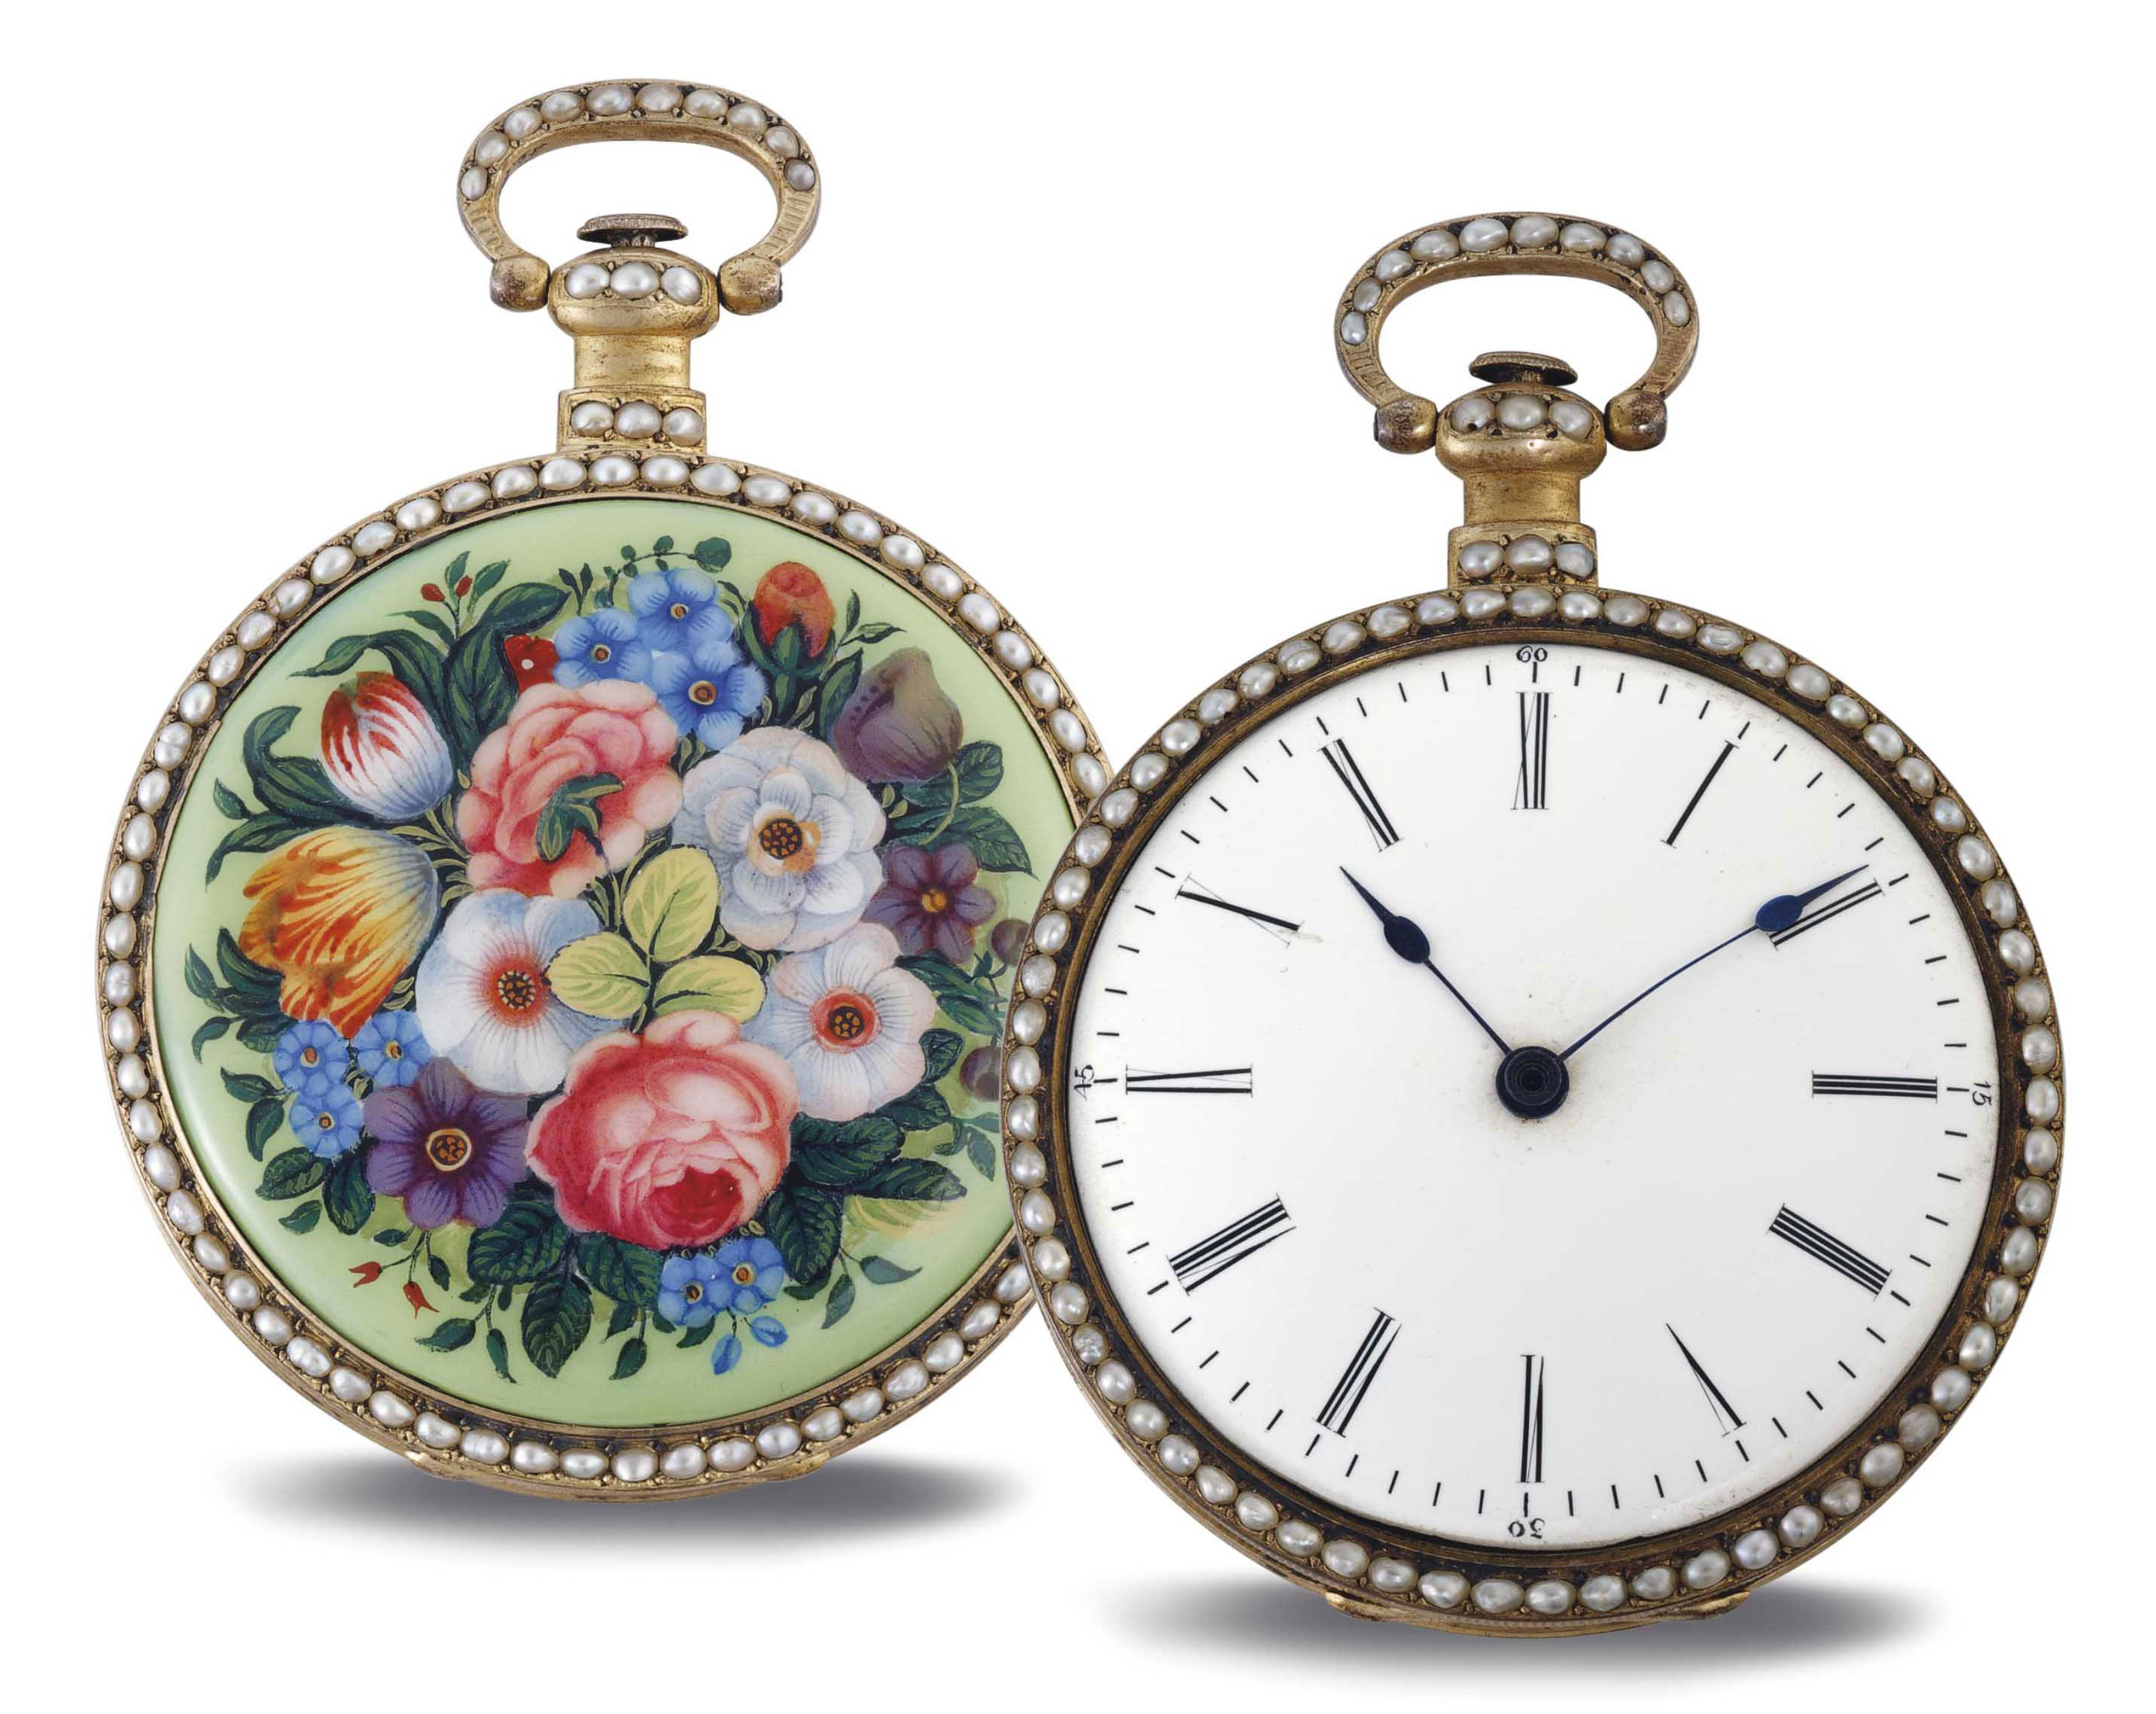 VAUCHER. A RARE GILT-BRASS, ENAMEL AND SPLIT-PEARL OPENFACE DUPLEX WATCH WITH CENTER SECONDS, MADE FOR THE CHINESE MARKET